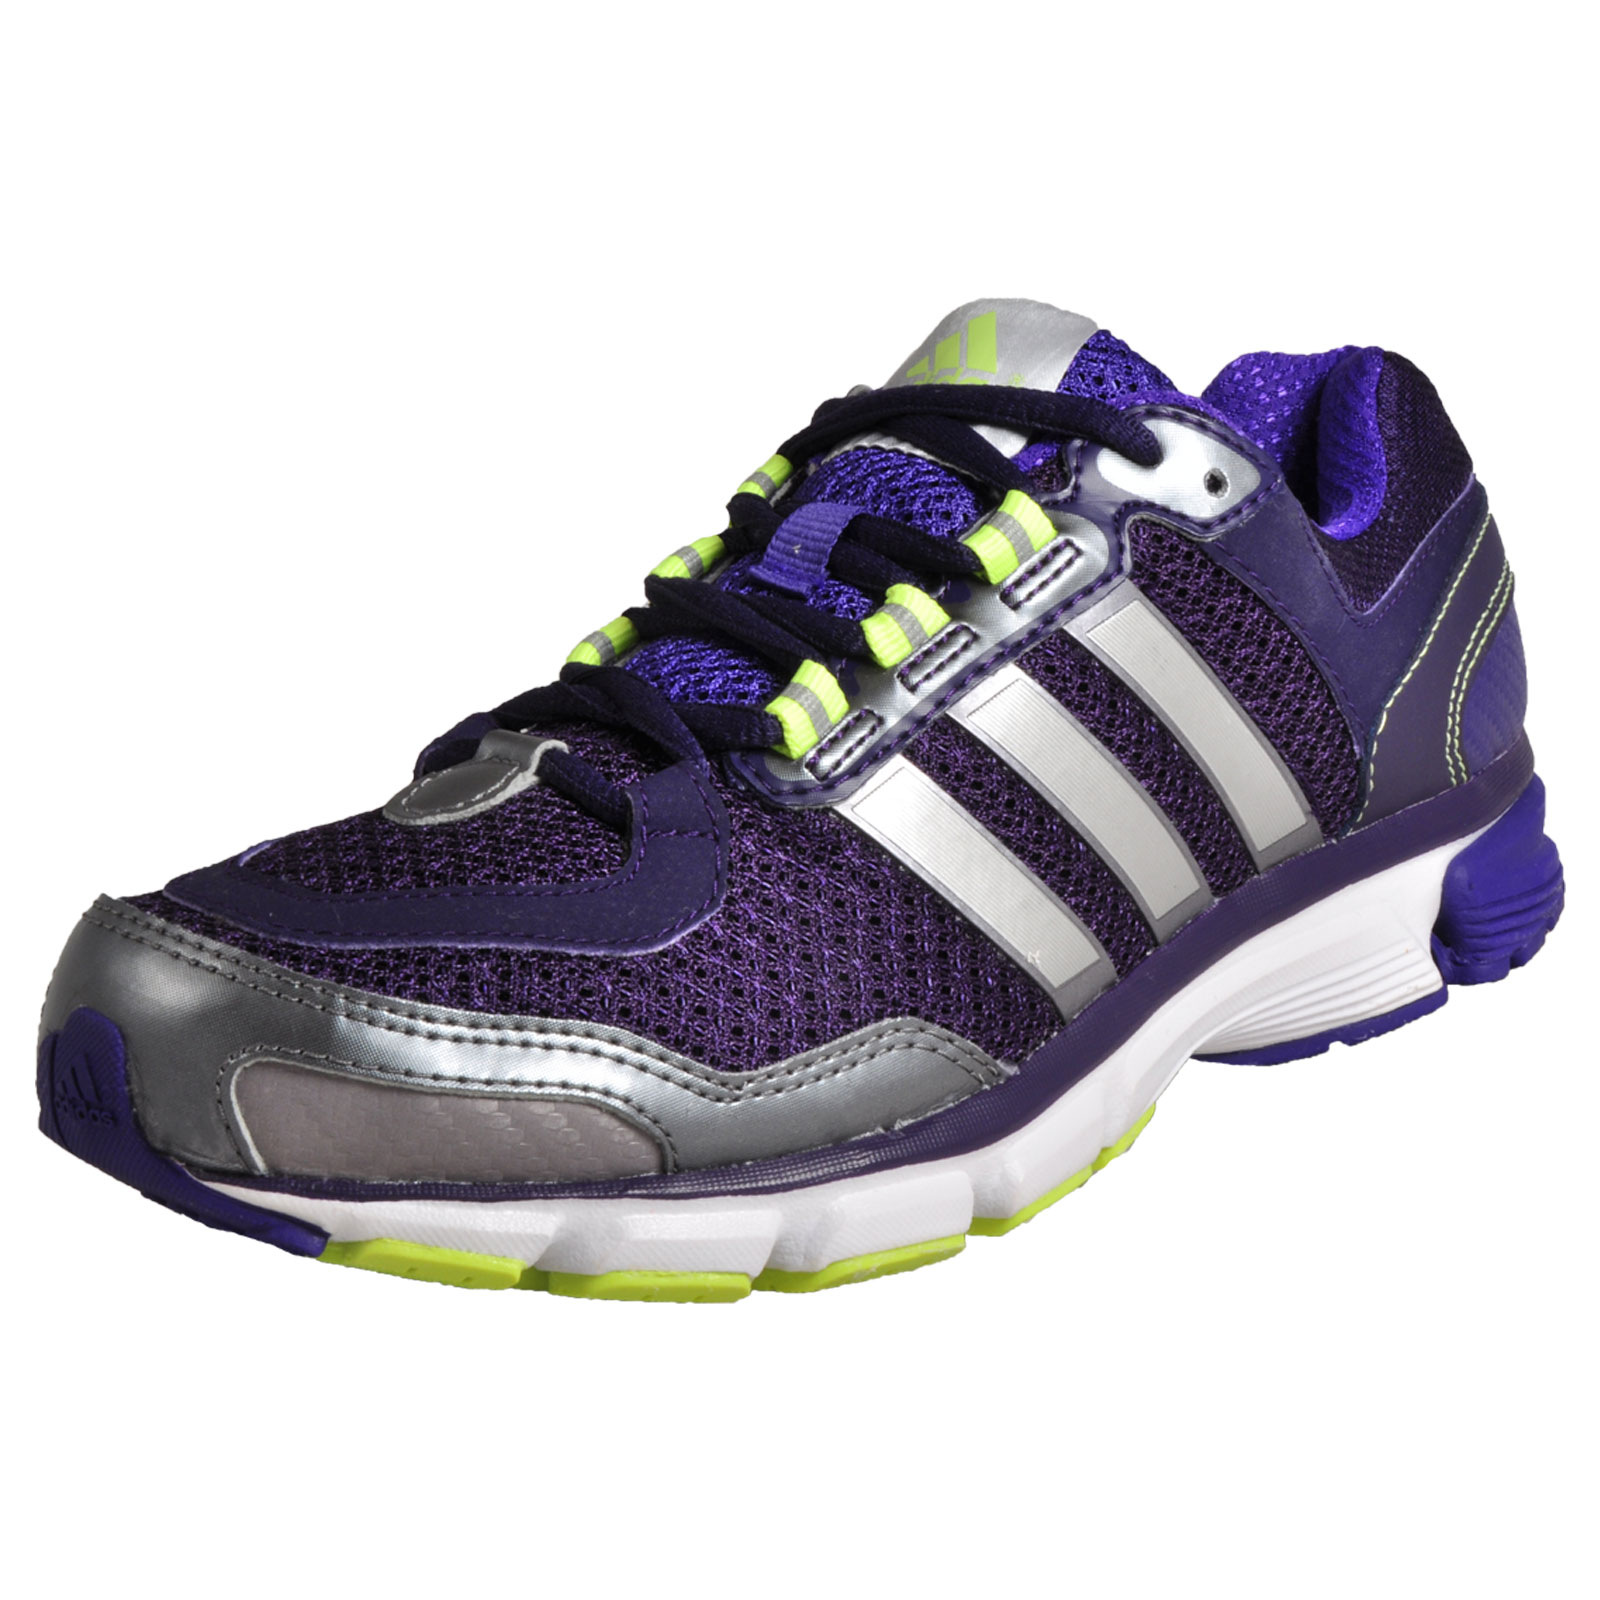 d7e337ad2af Details about Adidas Exerta 5 Women s Running Shoes Fitness Gym Workout  Trainers Purple